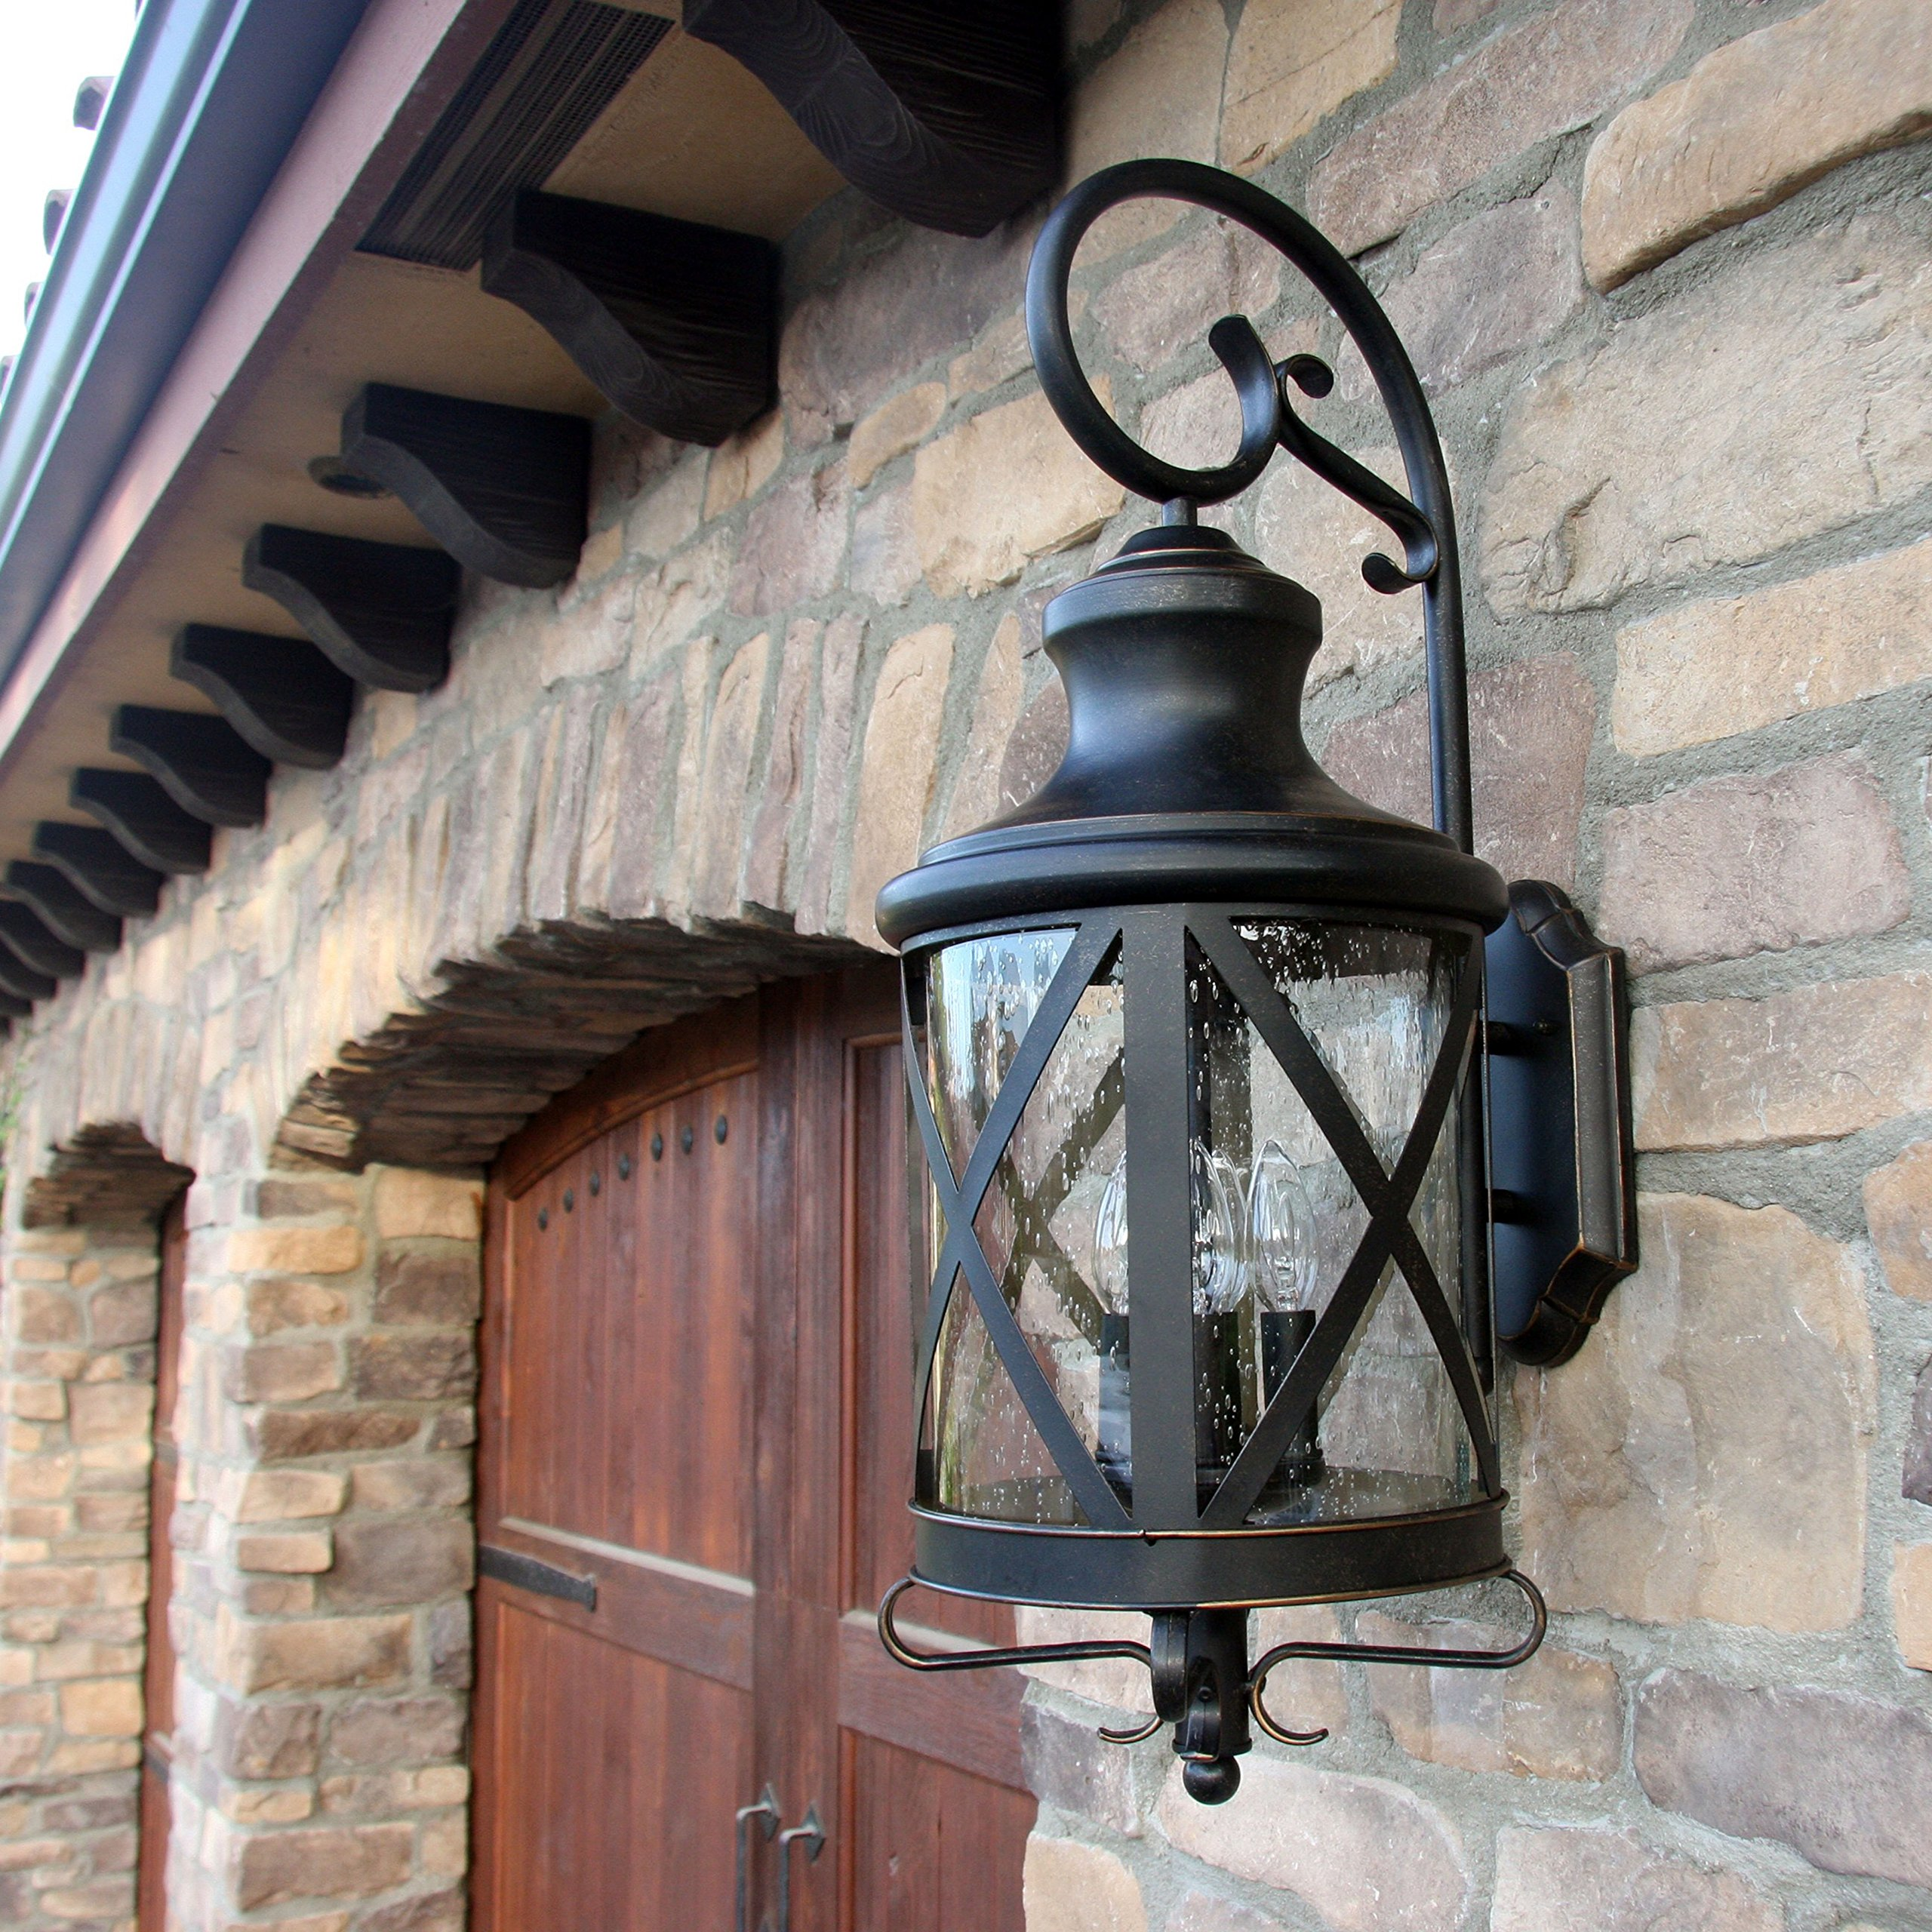 Y Decor EL543OR-S Modern, Transitional, Traditional 2 Light Exterior Outdoor Wall Scone Fixture Oil Rubbed Bronze with Clear Seedy Glass Small, Oil Rubbed Bronze, Brown